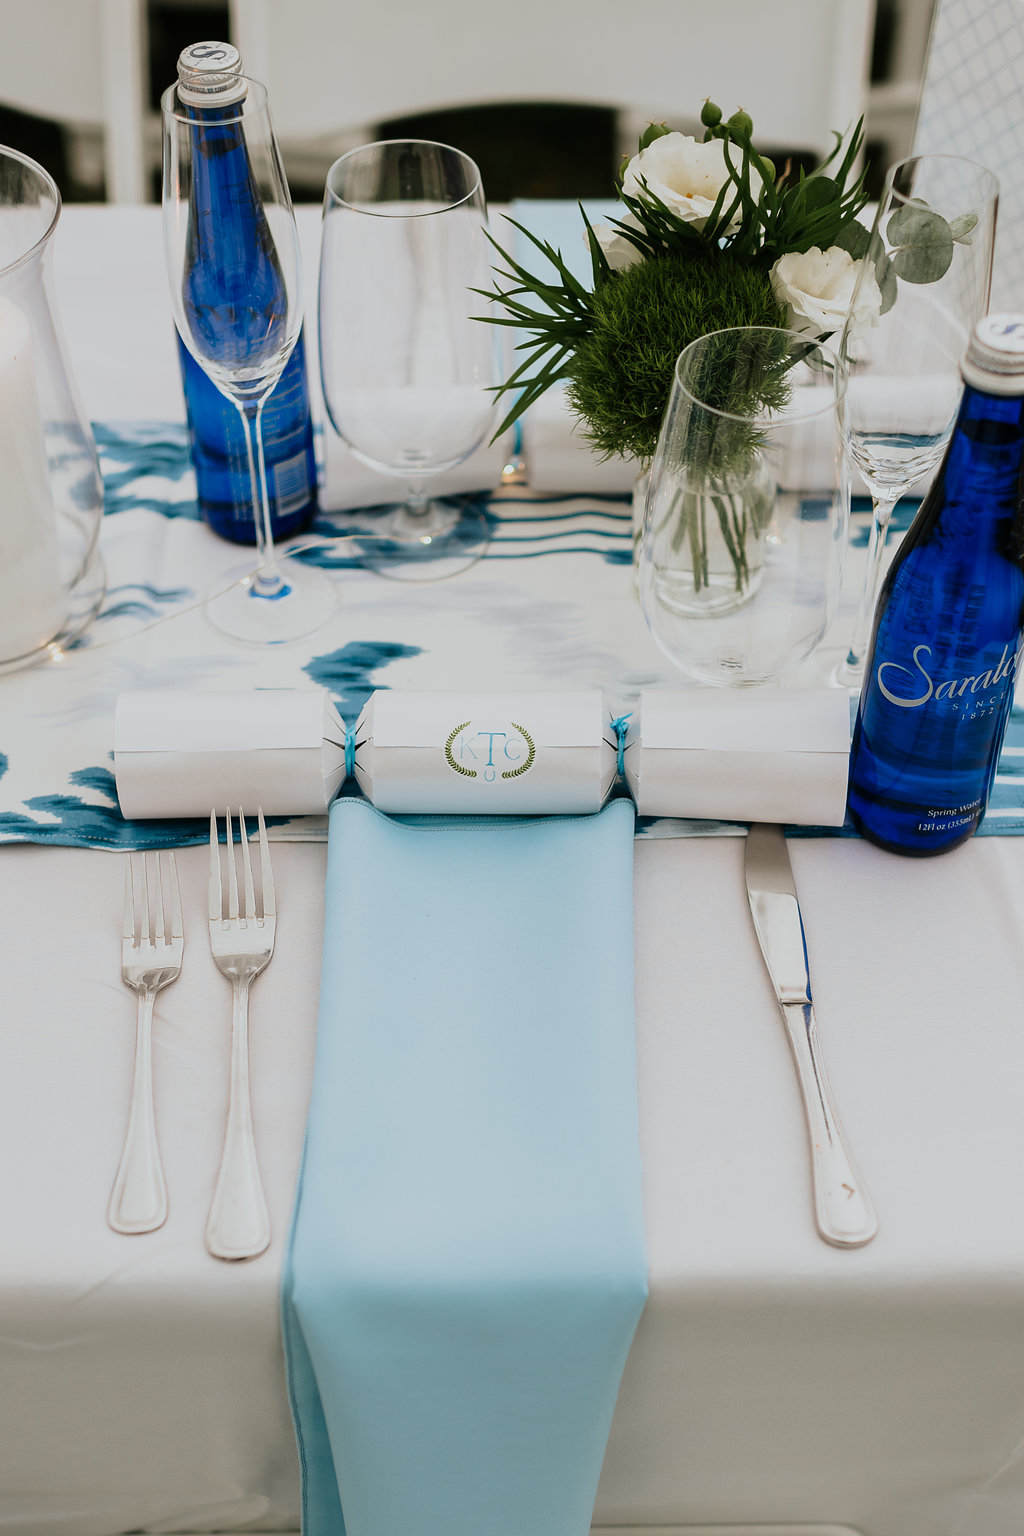 22 Blue Wedding Tablescape Fairfield Connecticut.jpg